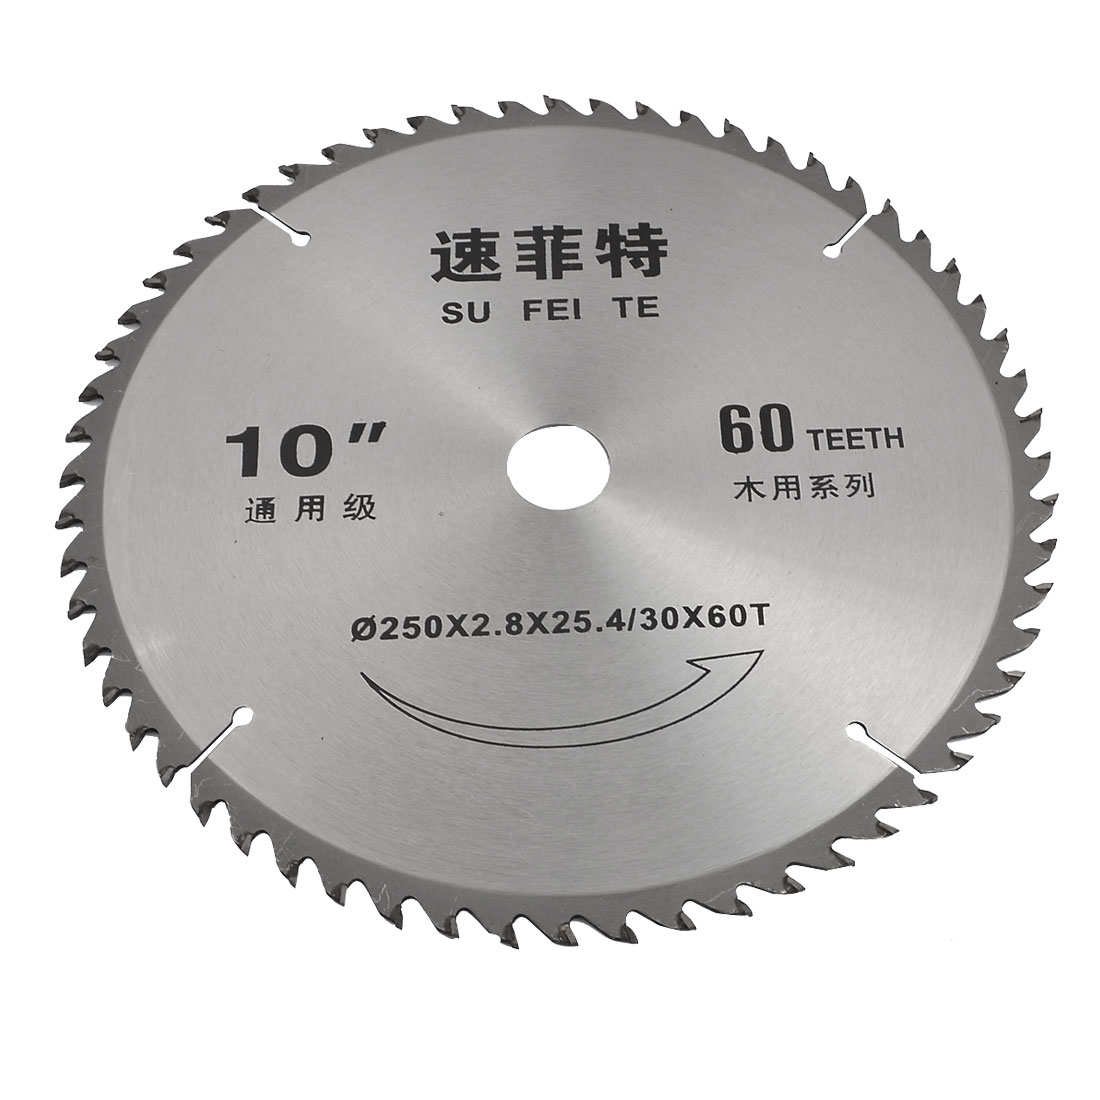 Silver Tone Alloy 60 Teeth 250mm Cutting Dia Saw Blade for Carpentry